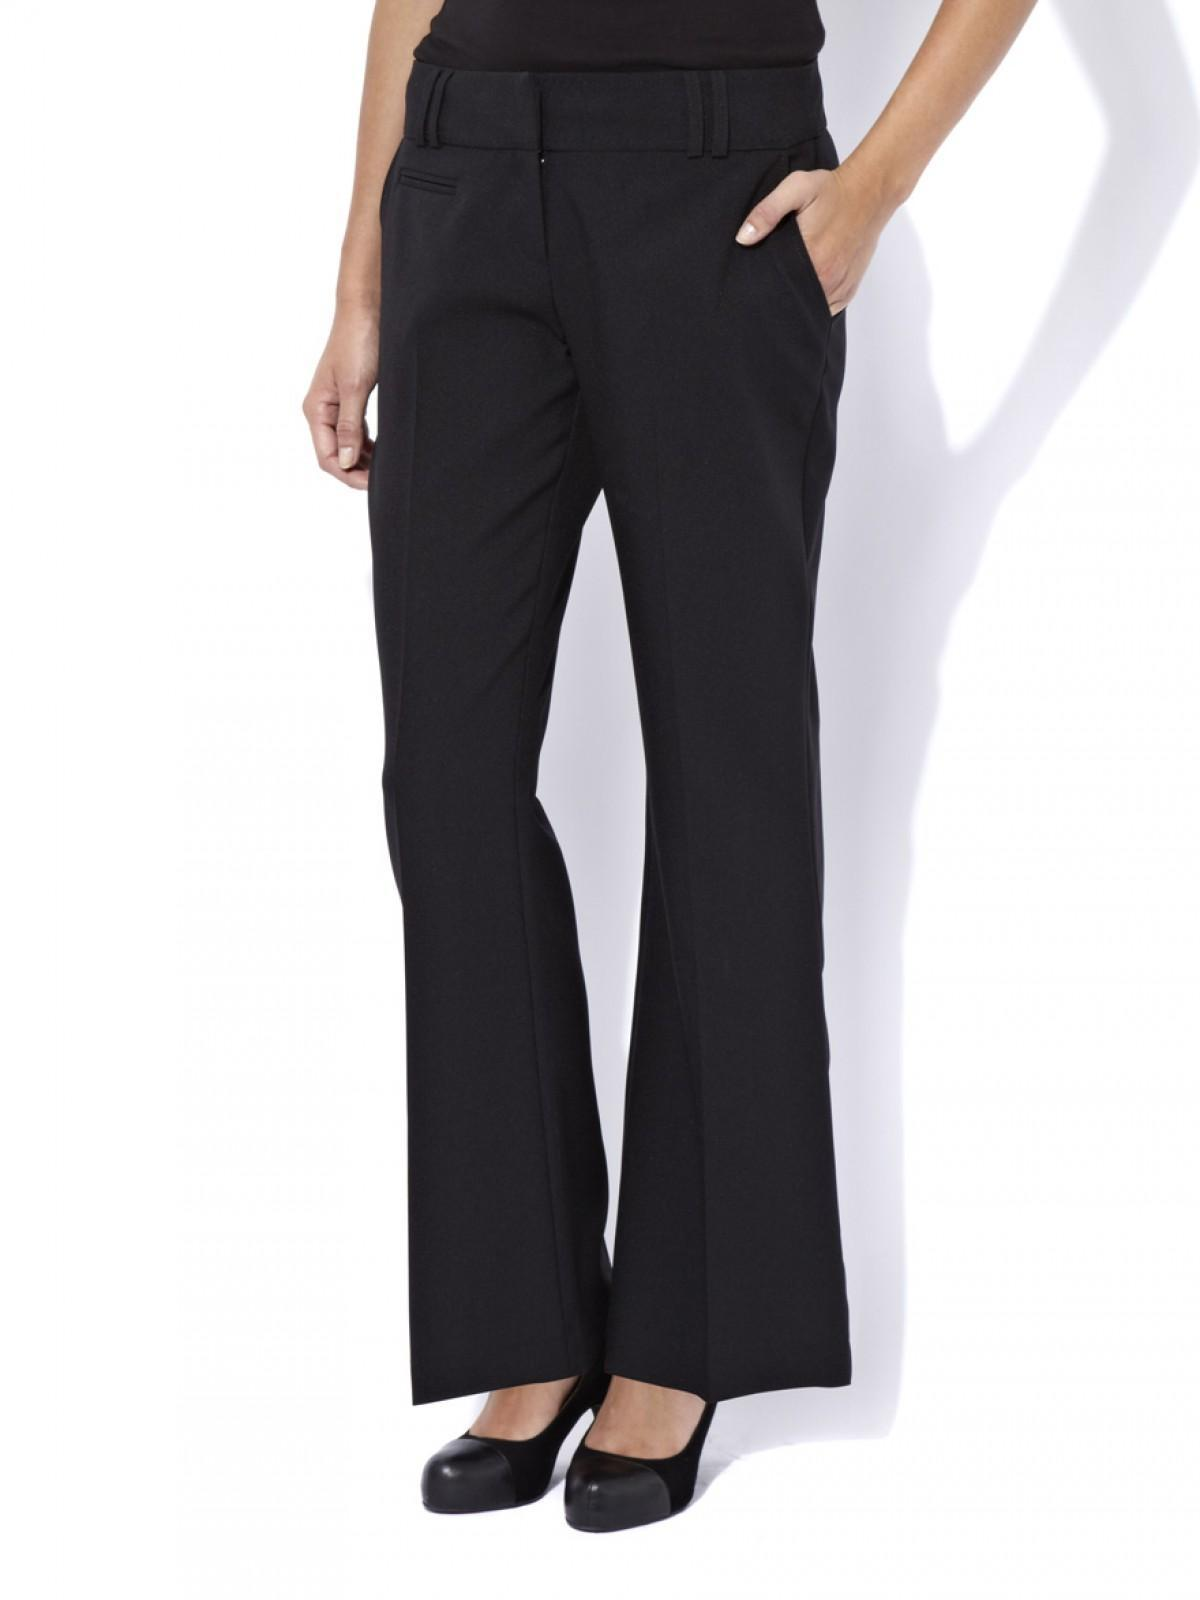 Black bootcut ladies trousers